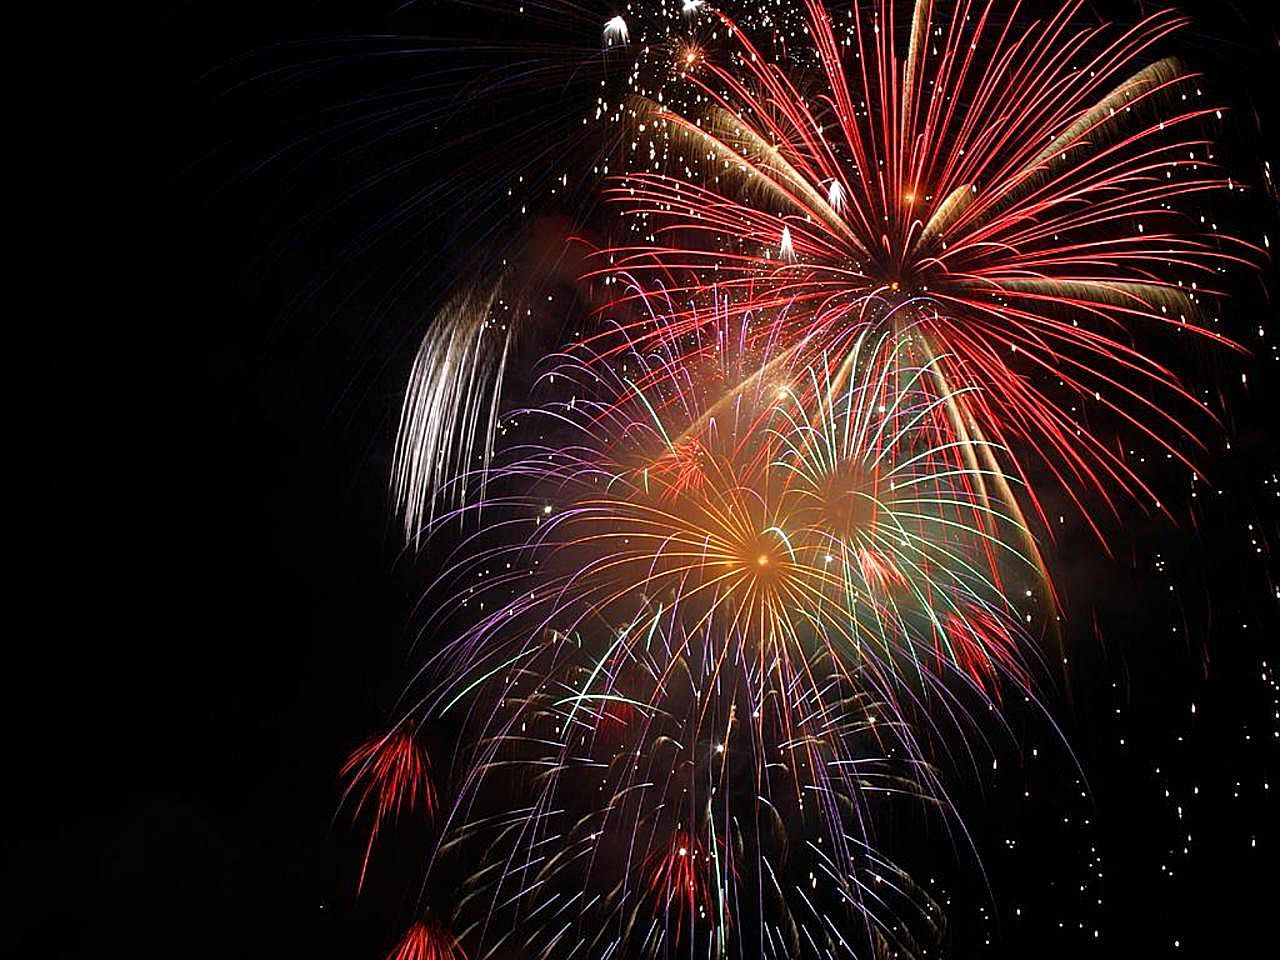 Beautiful and hazardous: fireworks should only be handled and fired according to safety guidelines